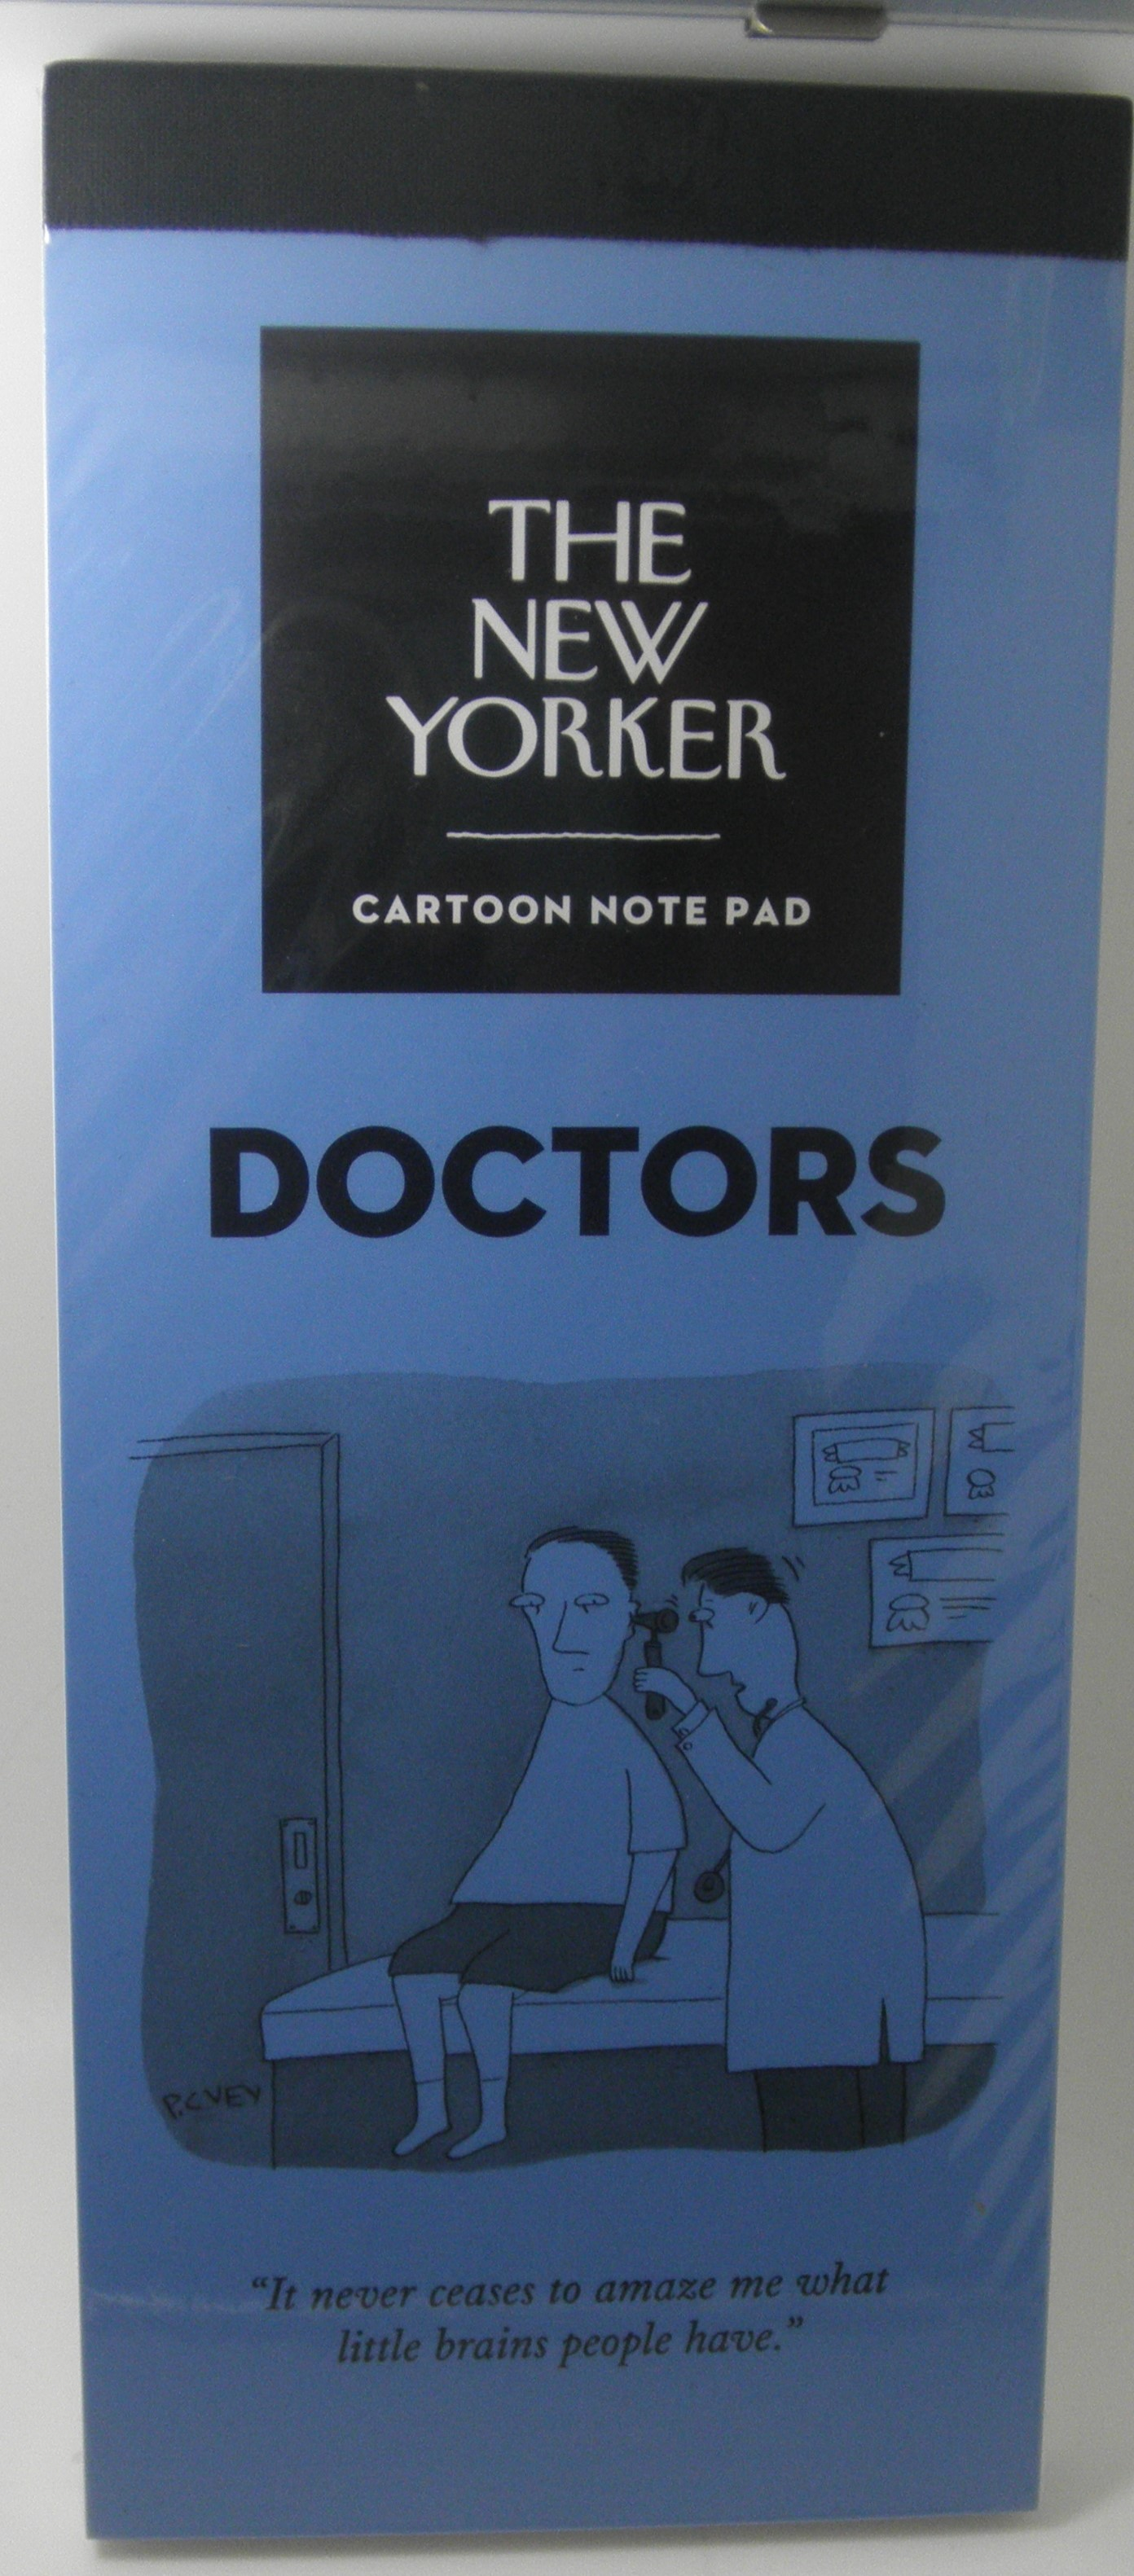 The New Yorker Cartoon Notepad Doctors